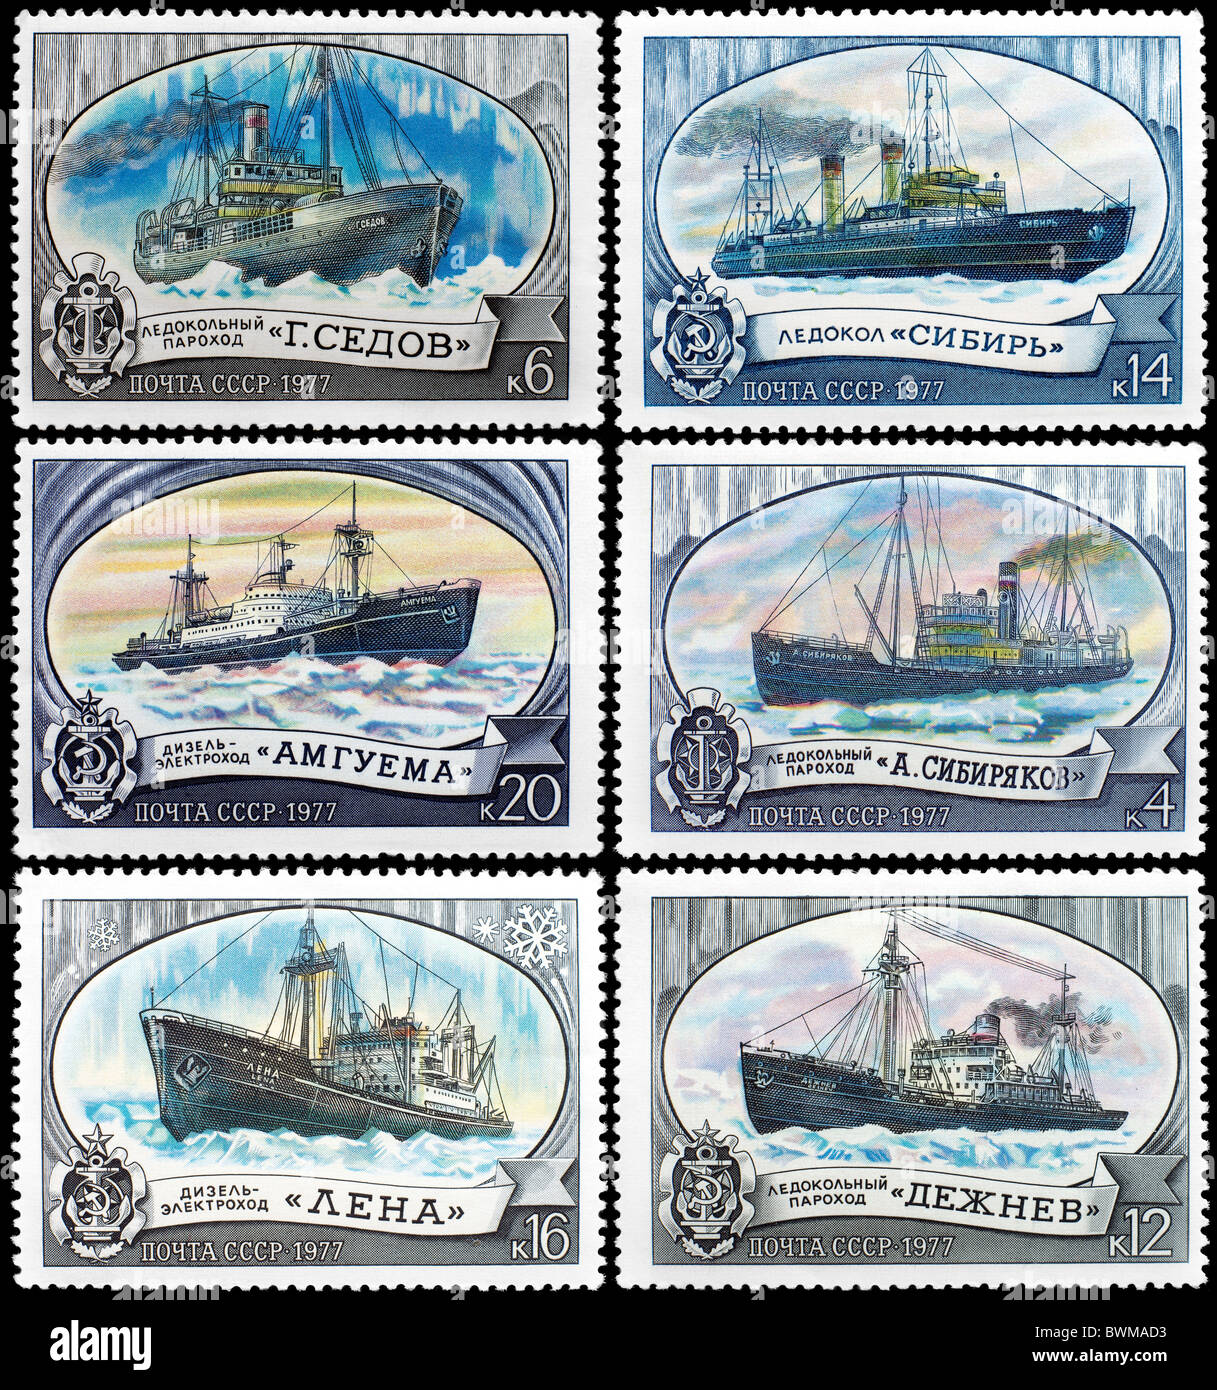 USSR - CIRCA 1977: postage stamp shows Prussian icebreakers, circa 1977 - Stock Image